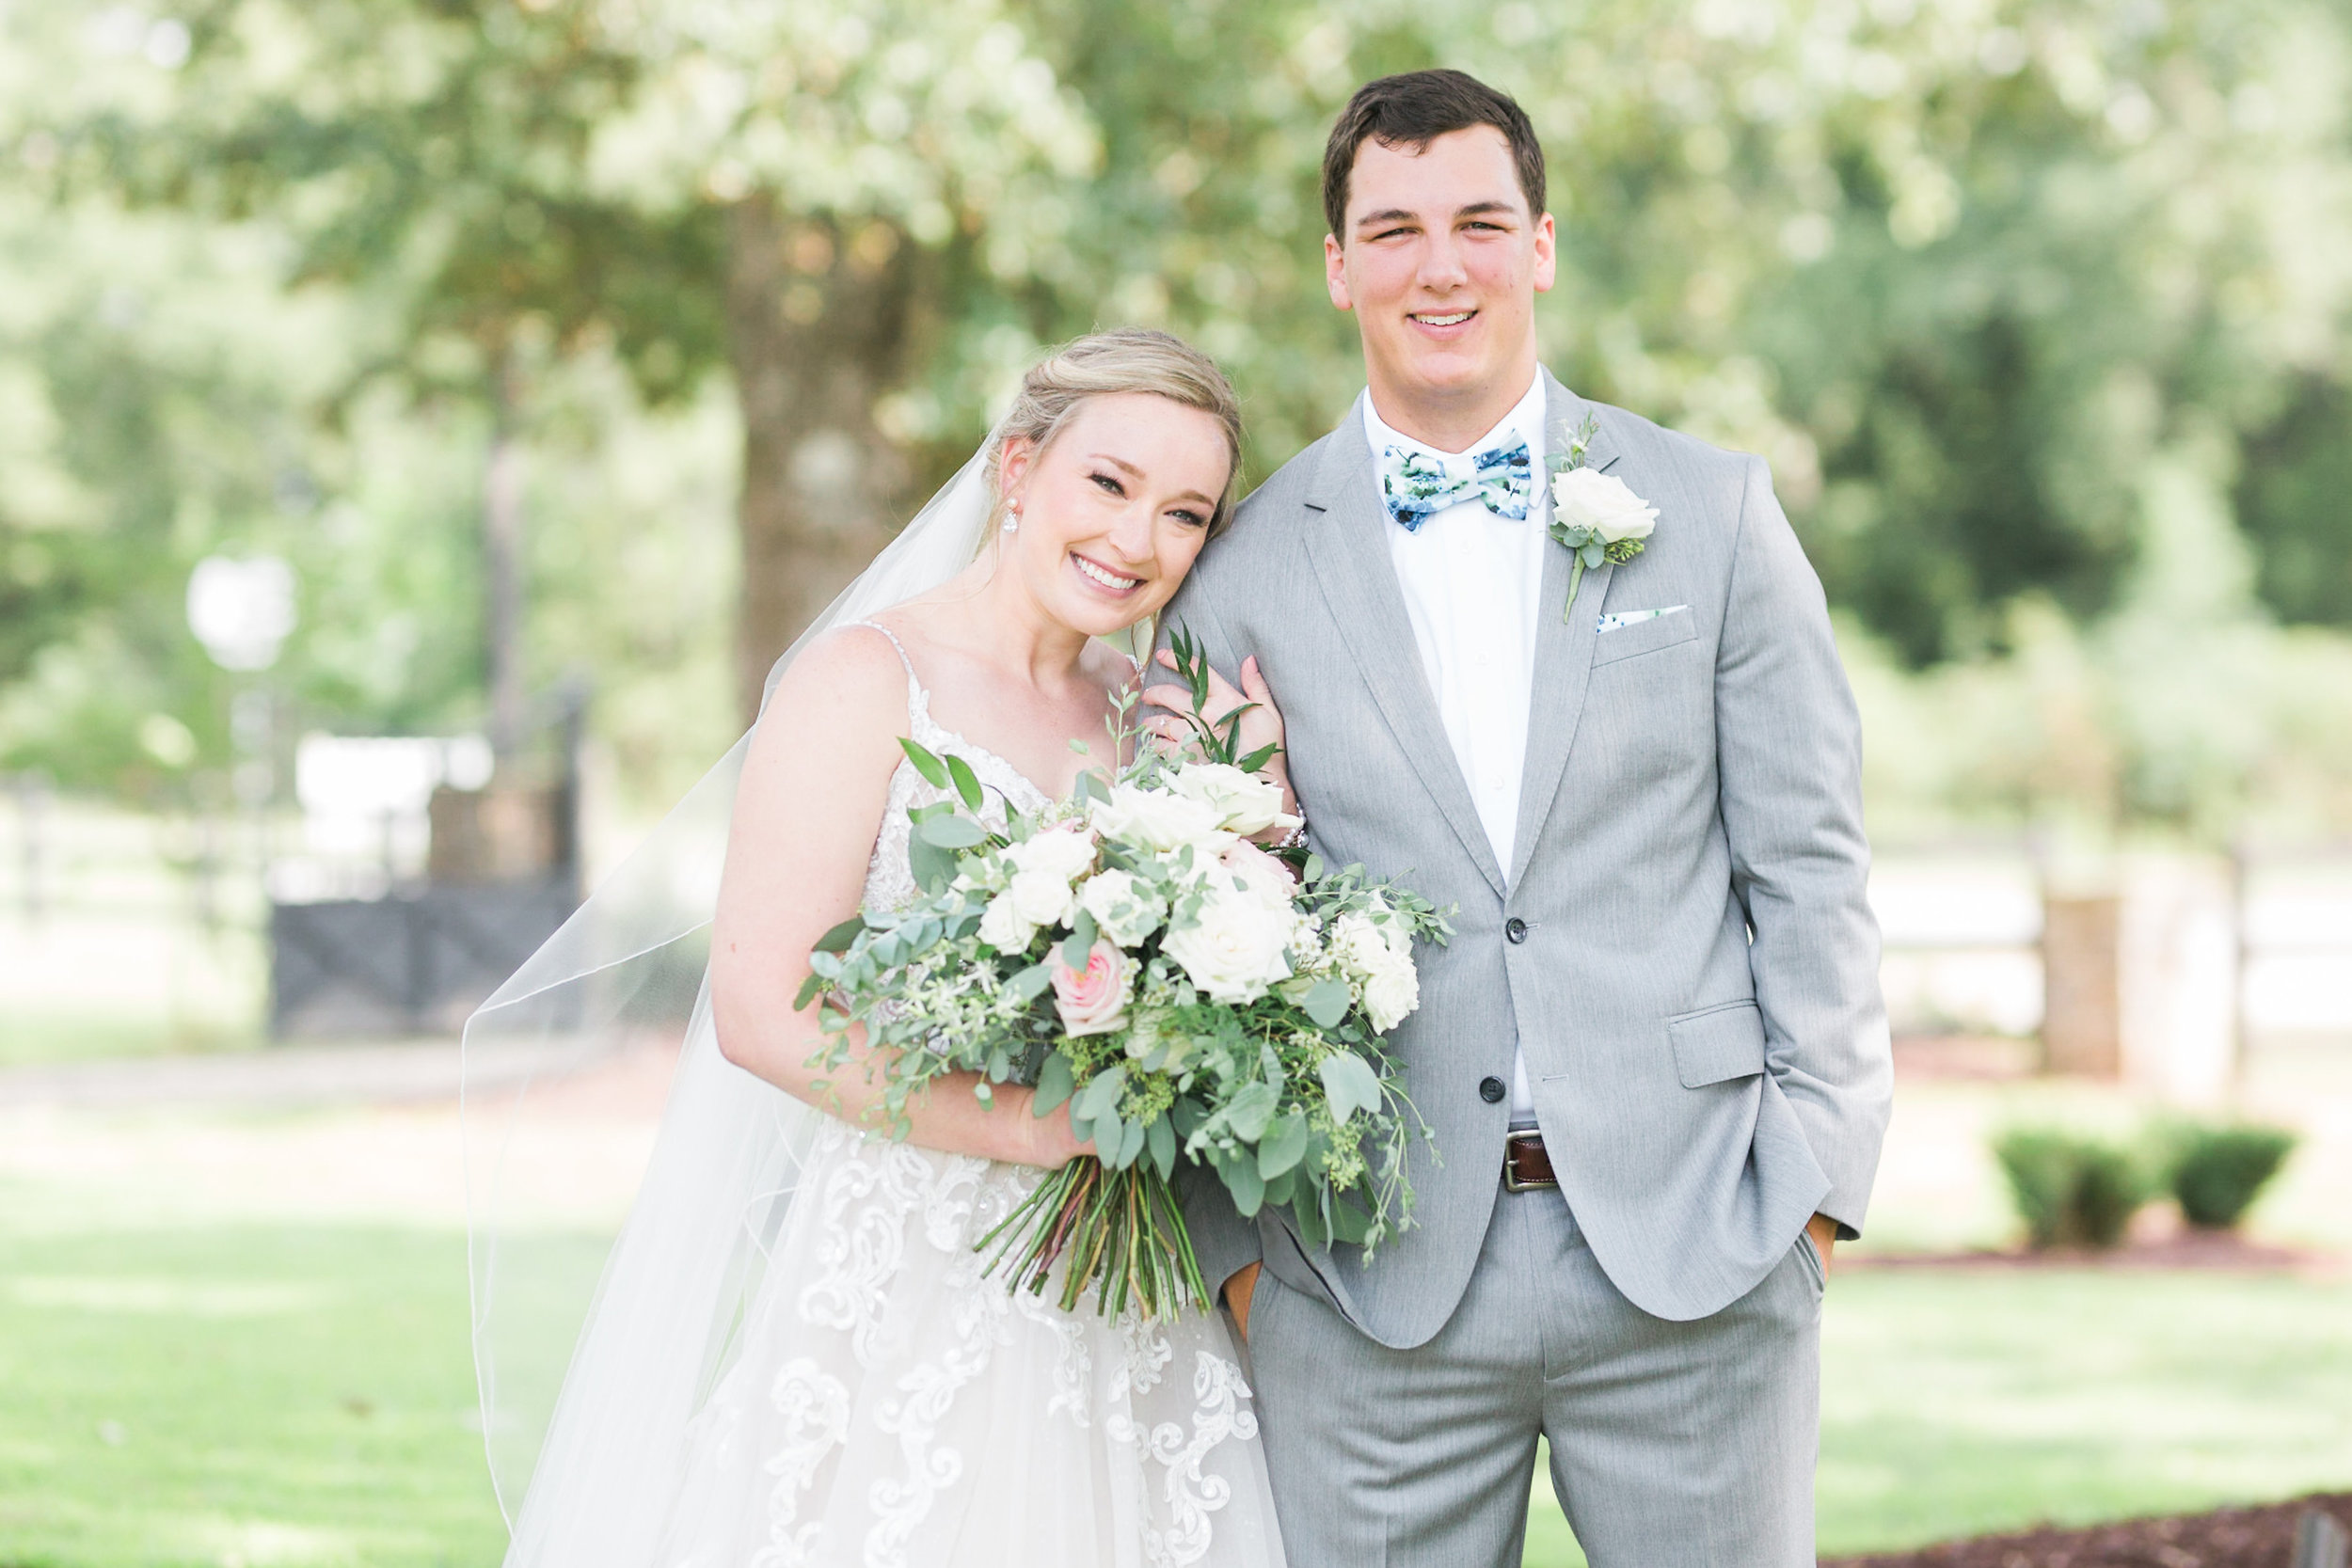 Haley & Trevor's first looks are pictures we will never tire of! Thanks to Mandee Matthews for capturing their perfect day!